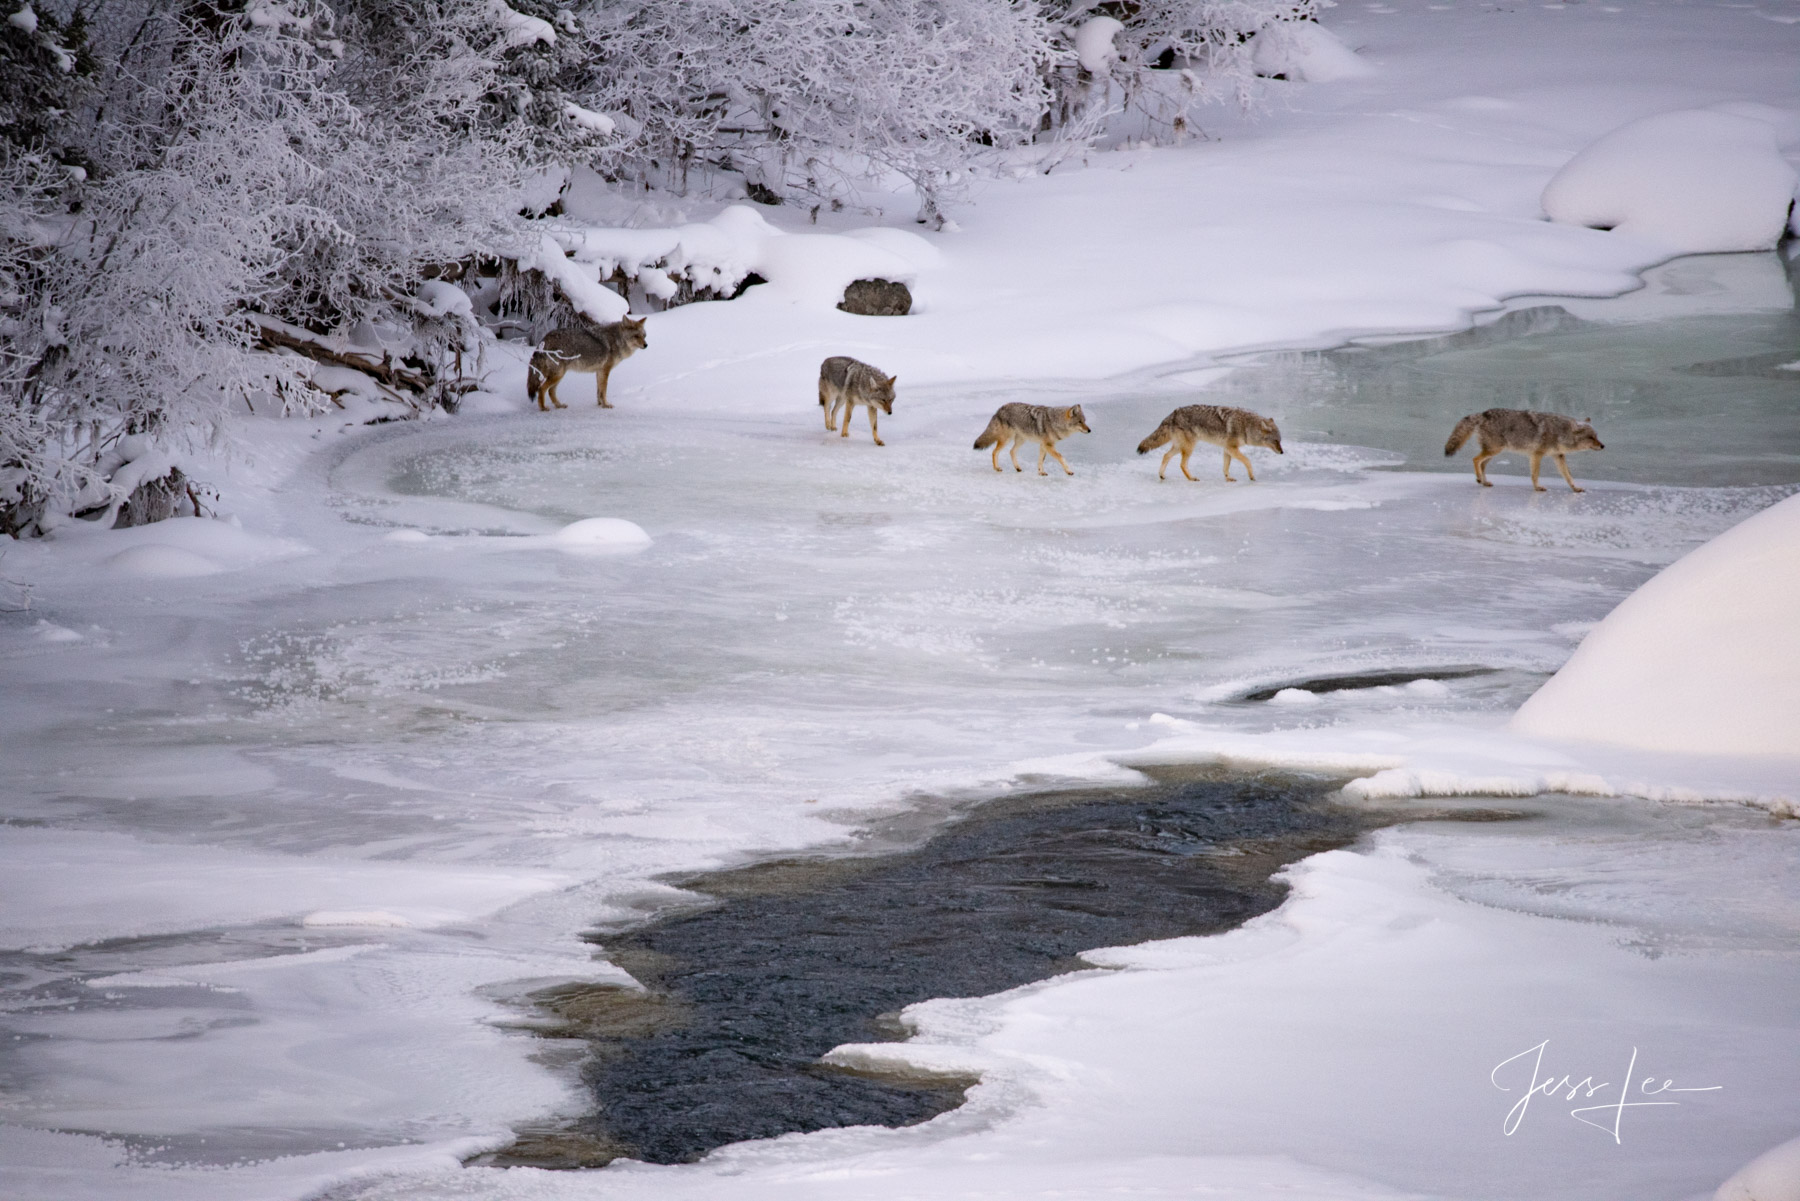 Yellowstone, winter, photography, wildlife, wolves, moose, elk, bison, otters, coyotes, snow, cold, awesome, jess lee, photography, , national park, photo